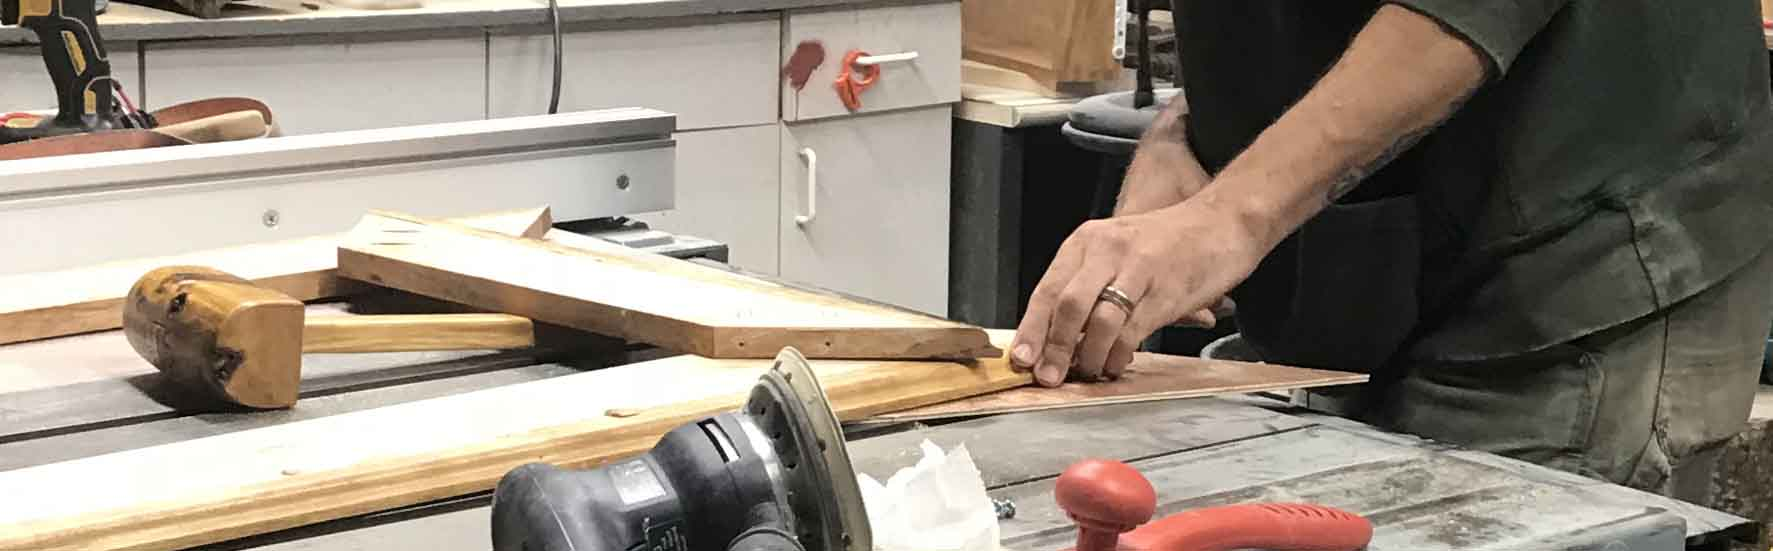 Robert Wright Woodworking & Restoration: Workshop